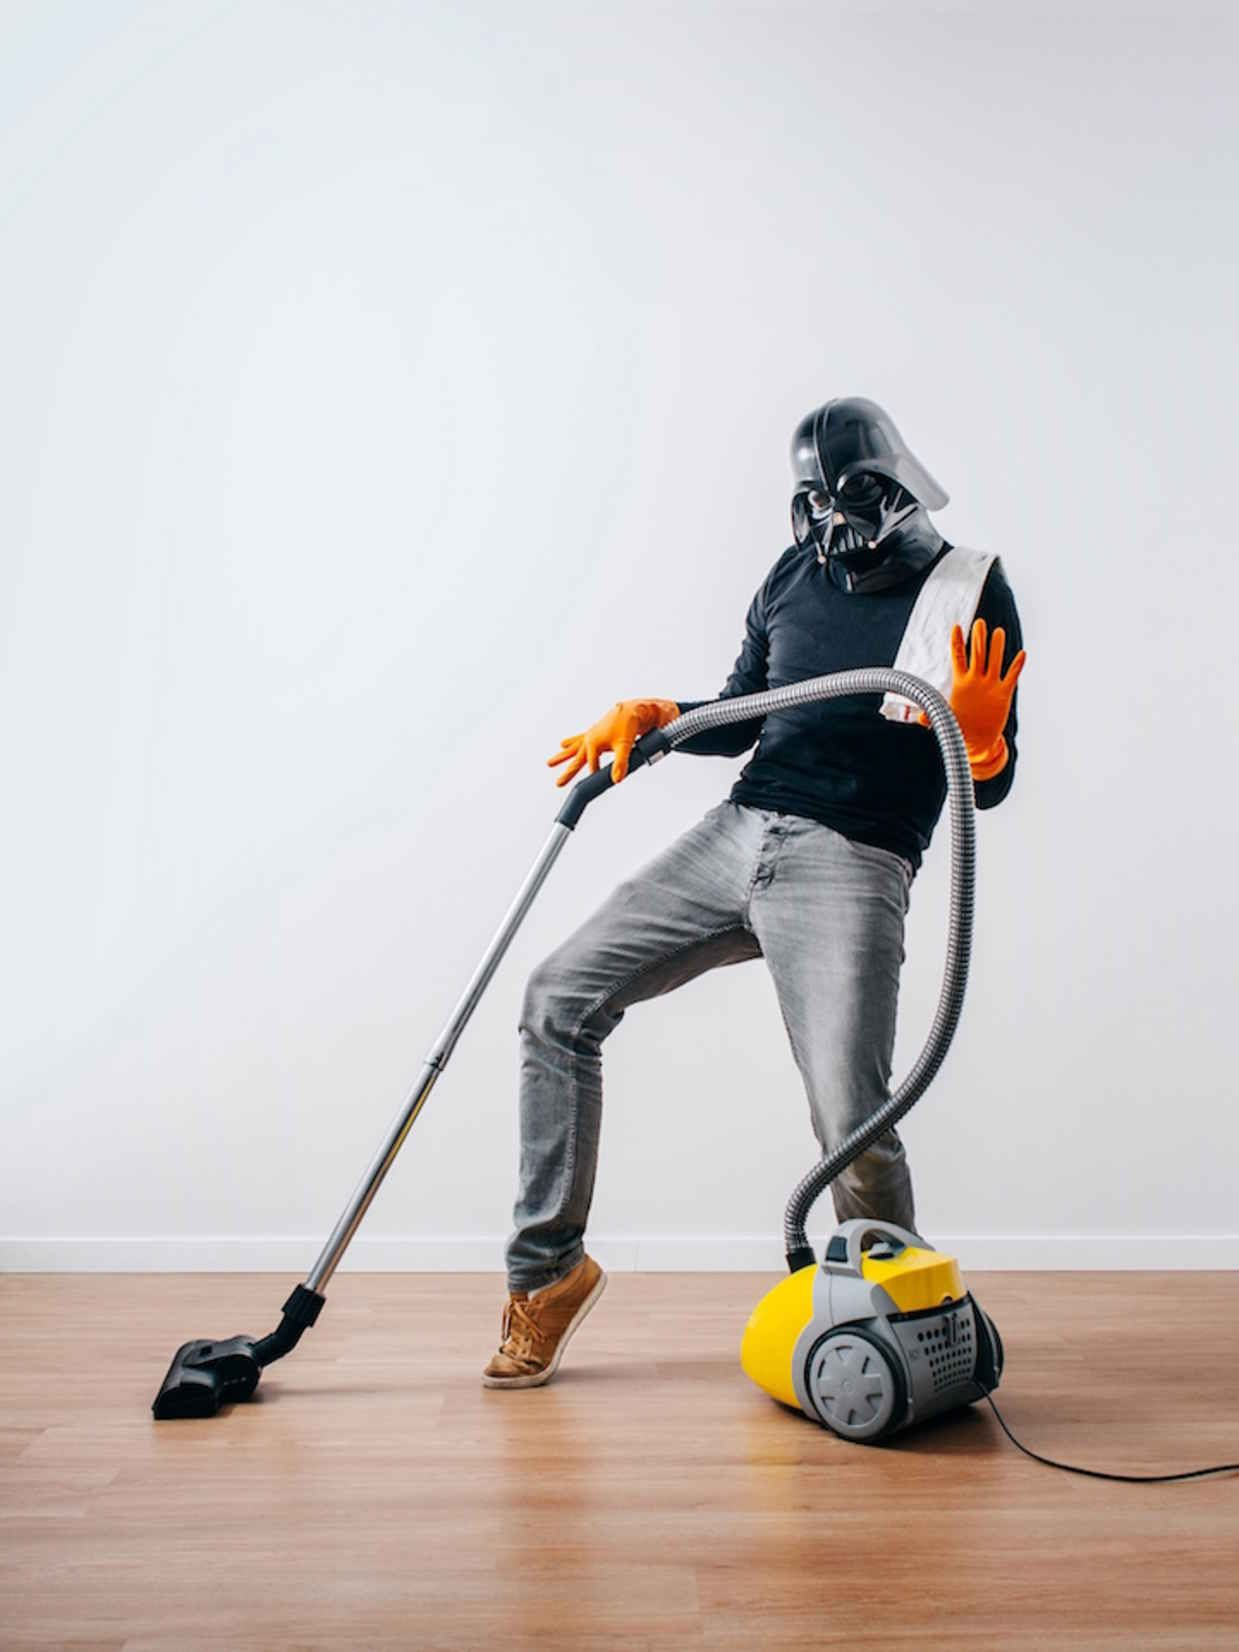 Funny Photo Series Imagines Darth Vader Dealing with the Struggles of Every Day Life - BlazePress